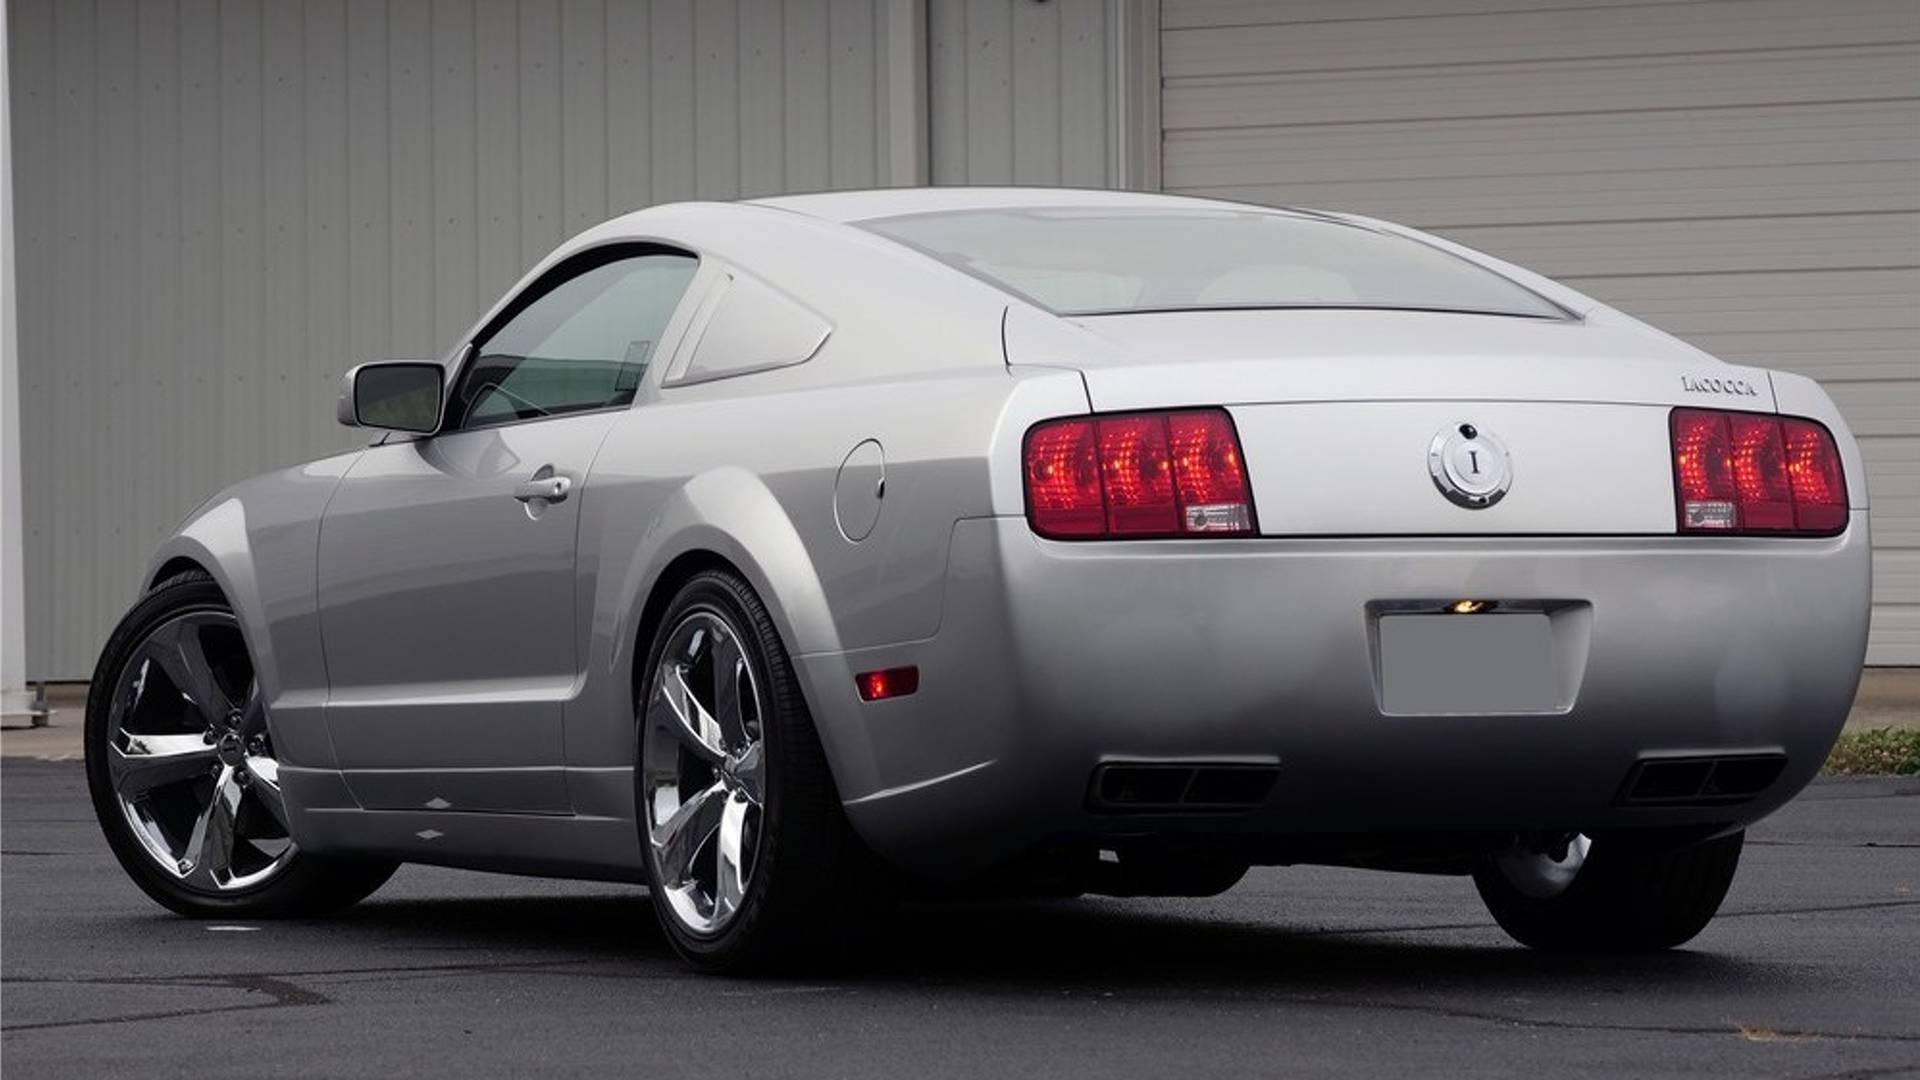 Lee Iacocca Mustang >> Limited Edition Ford Mustang Iacocca To Cross The Auction Block